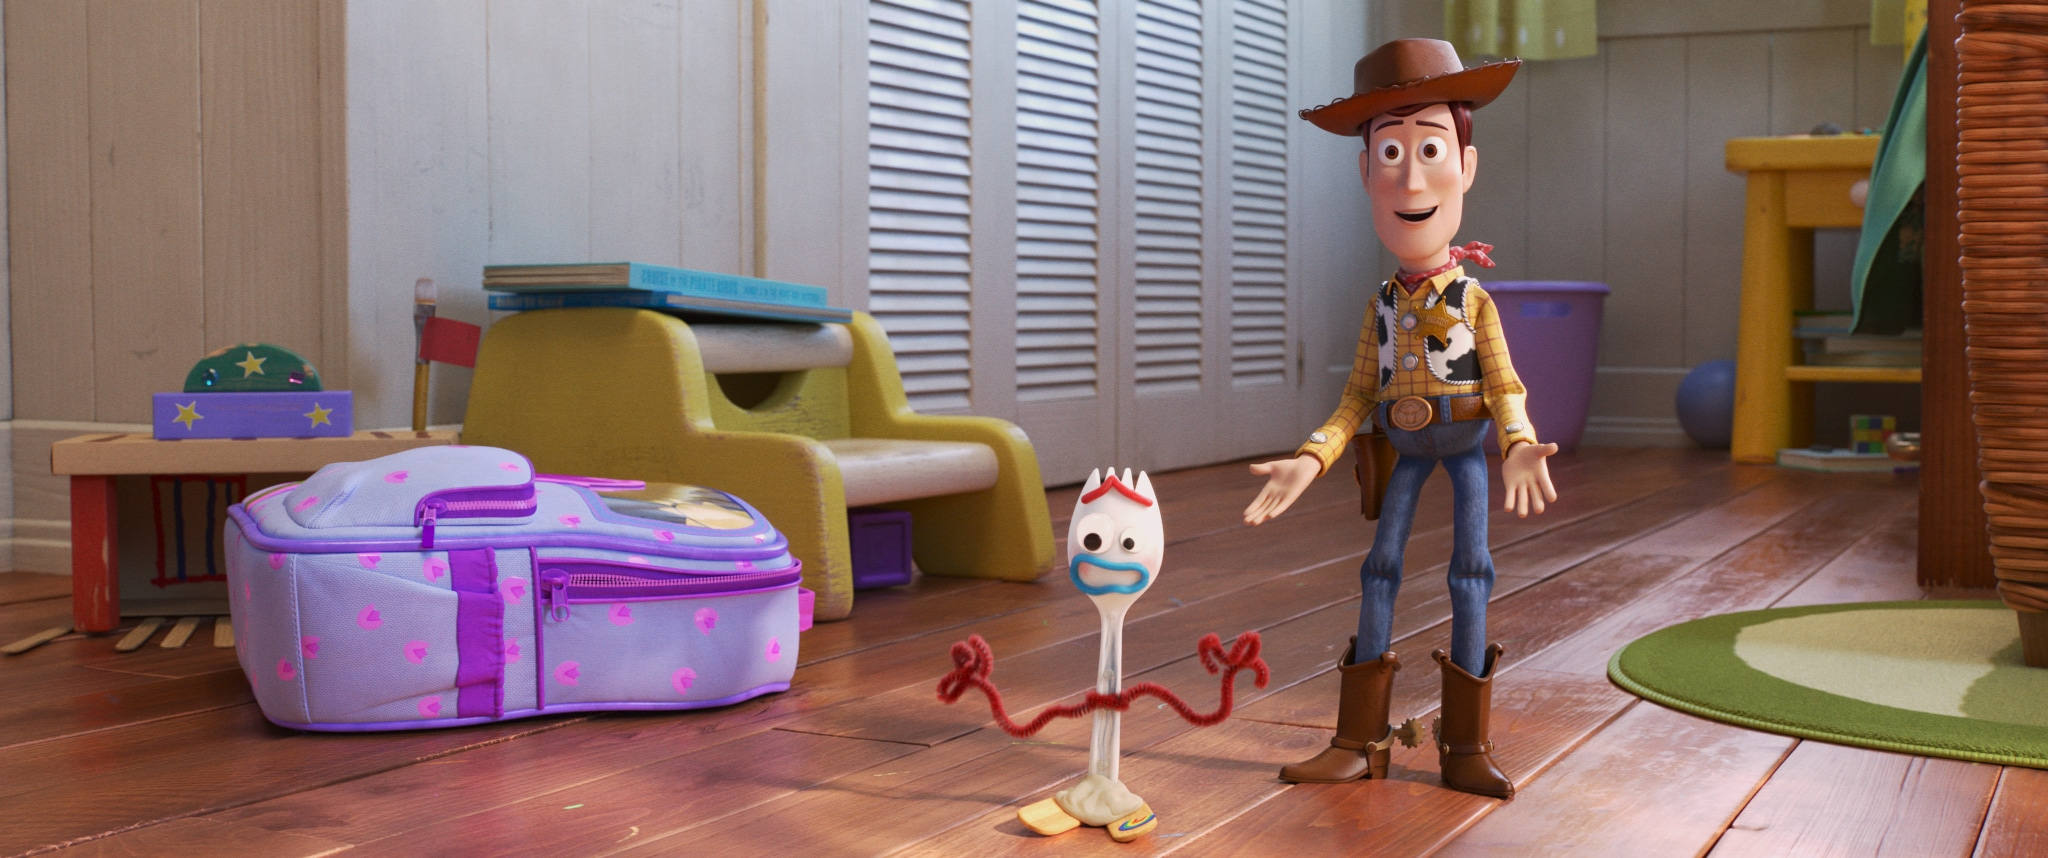 Toy Story 4 Final Trailer